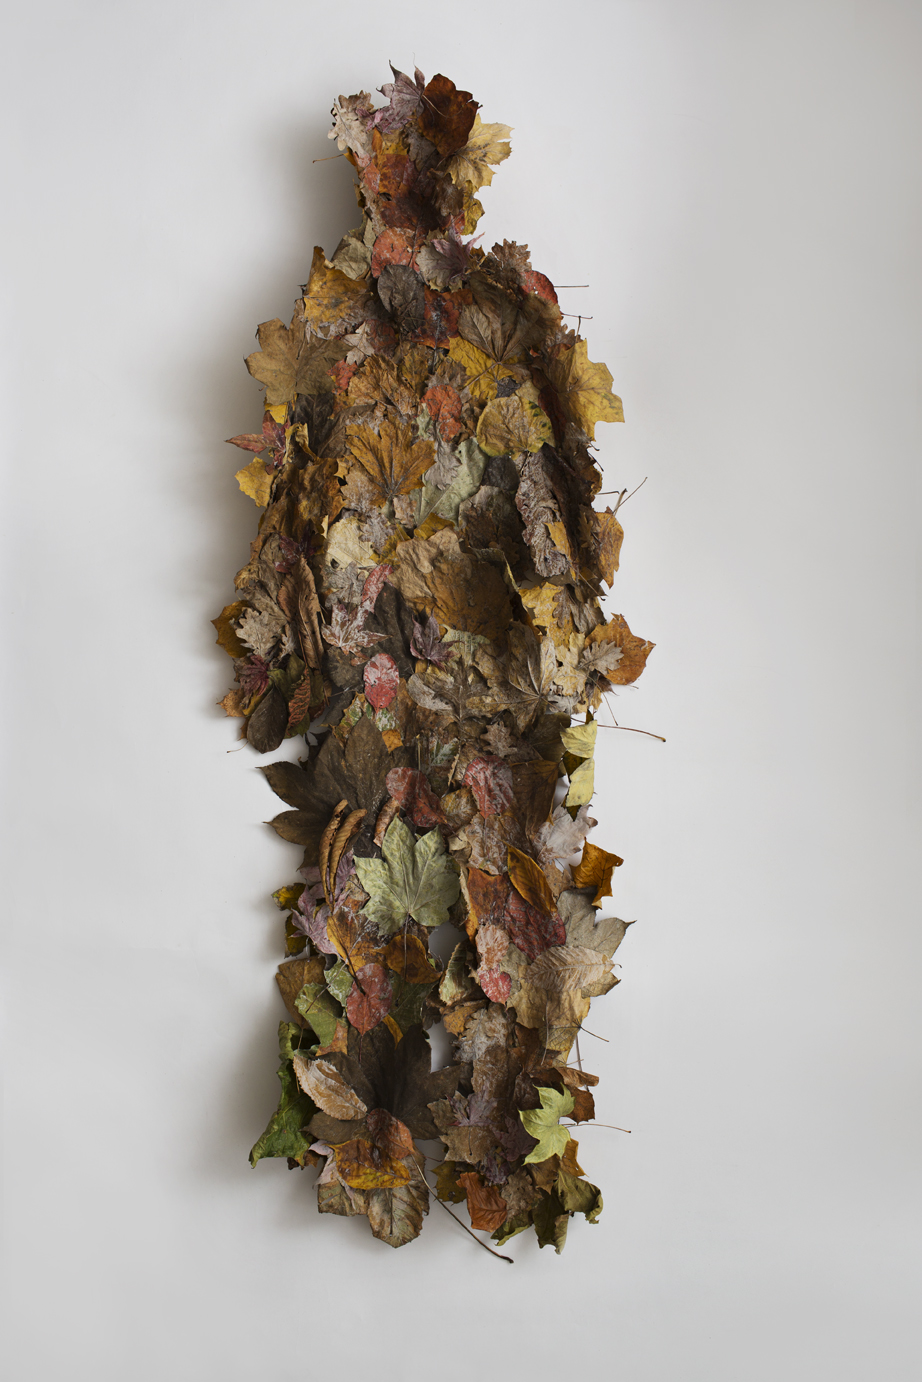 HAM, (Means Him aswell as a shell for a snake or animal that change skin.) Imprint of human body in faded leaves, 180 x 60 c 25 cm, 2018